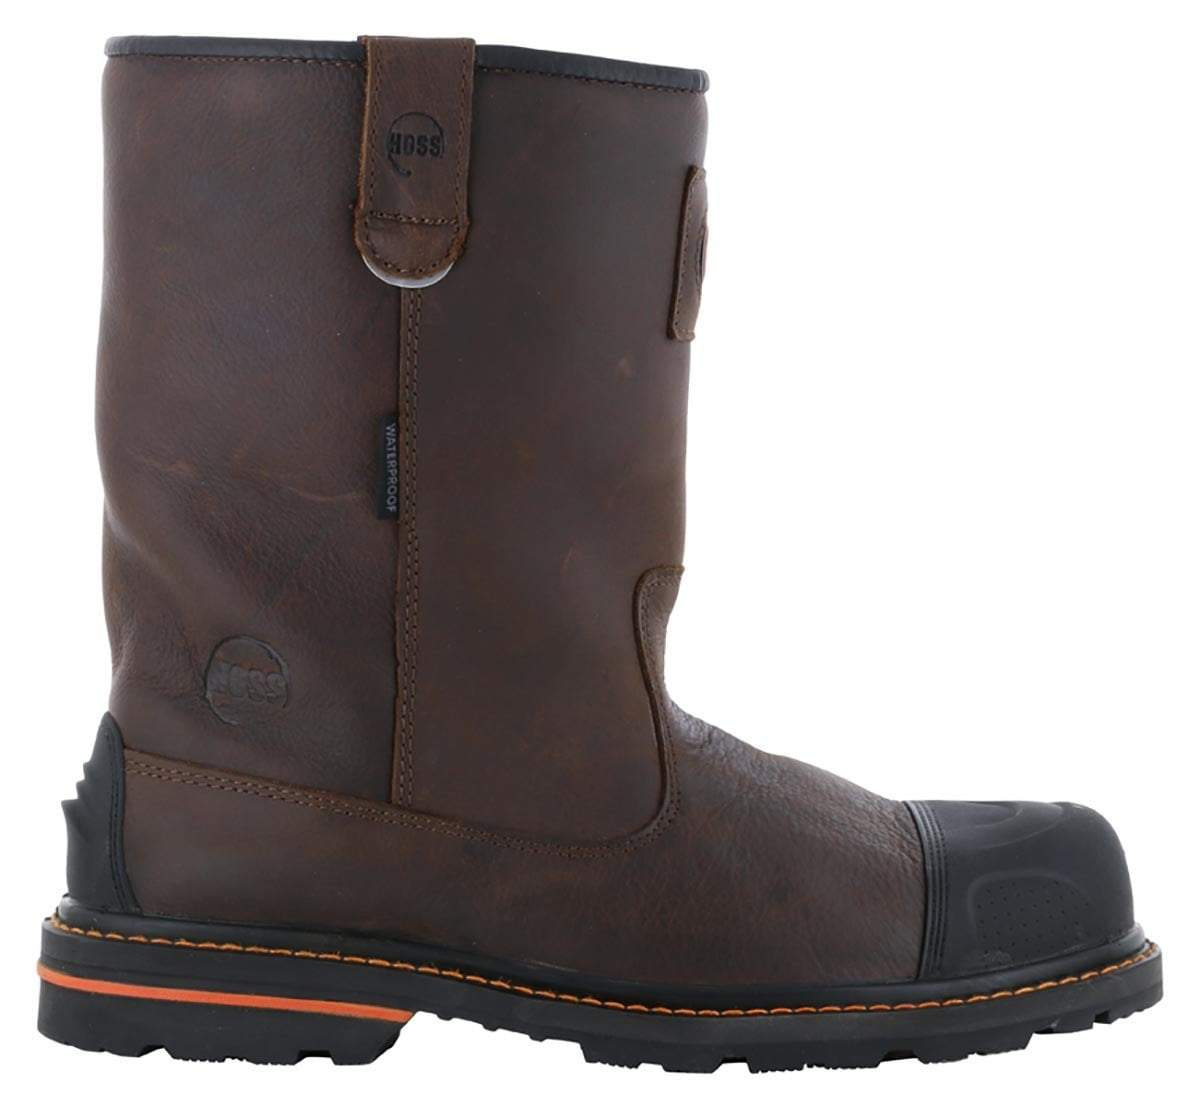 8242a40c610 Hoss Cartwright Composite Toe Wellington Boot